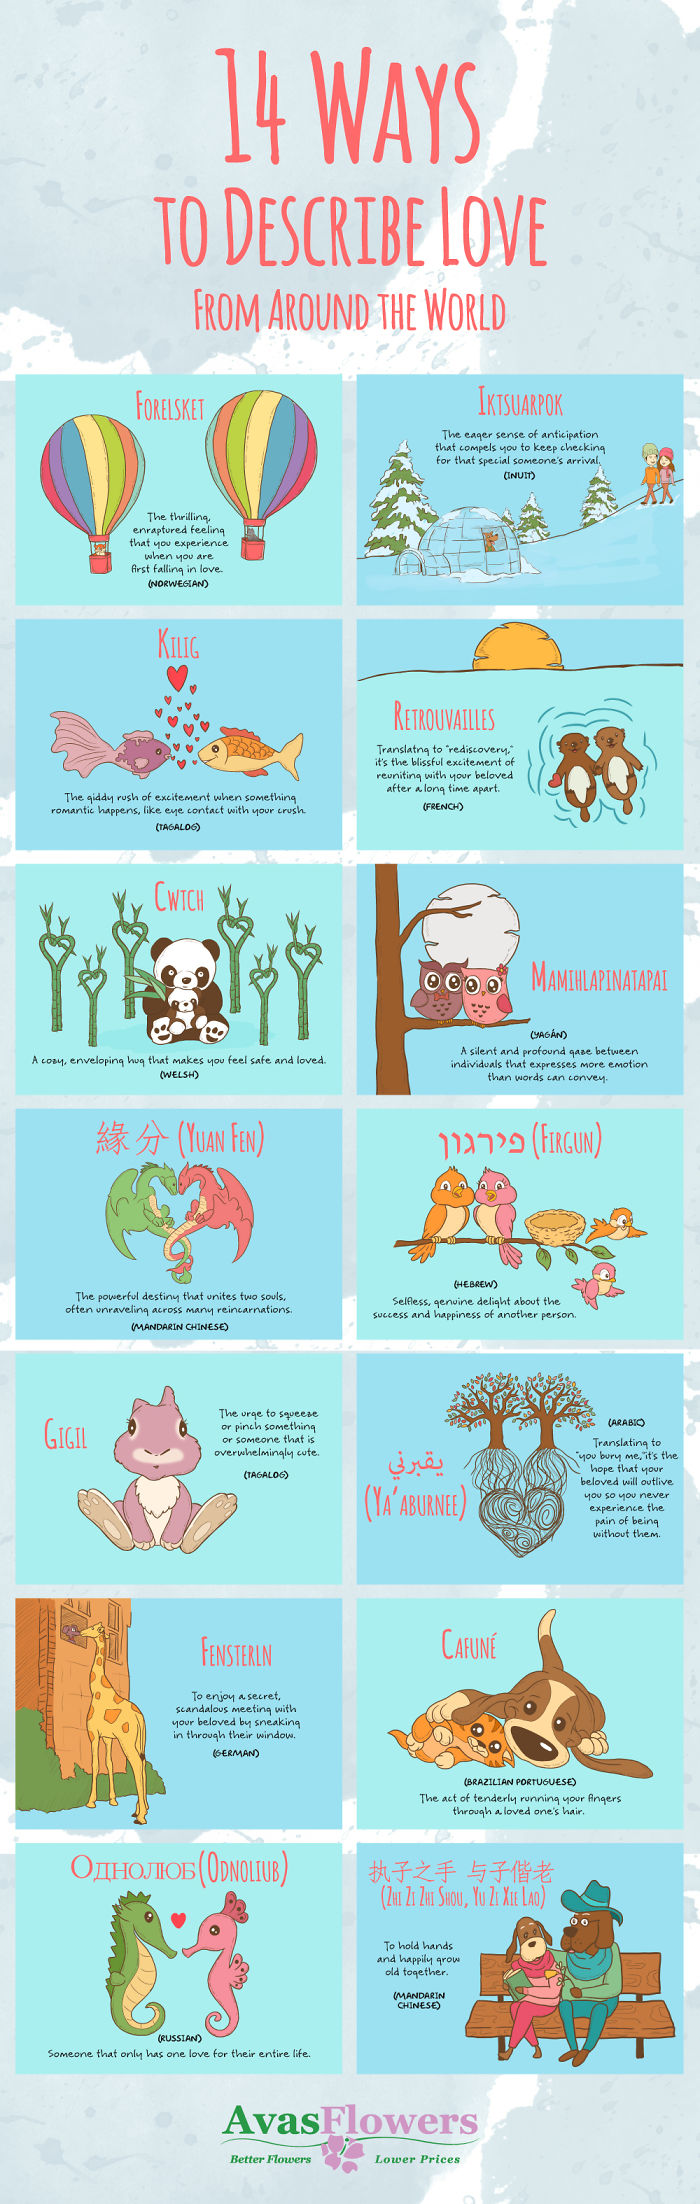 14 Ways To Describe Love From Around The World